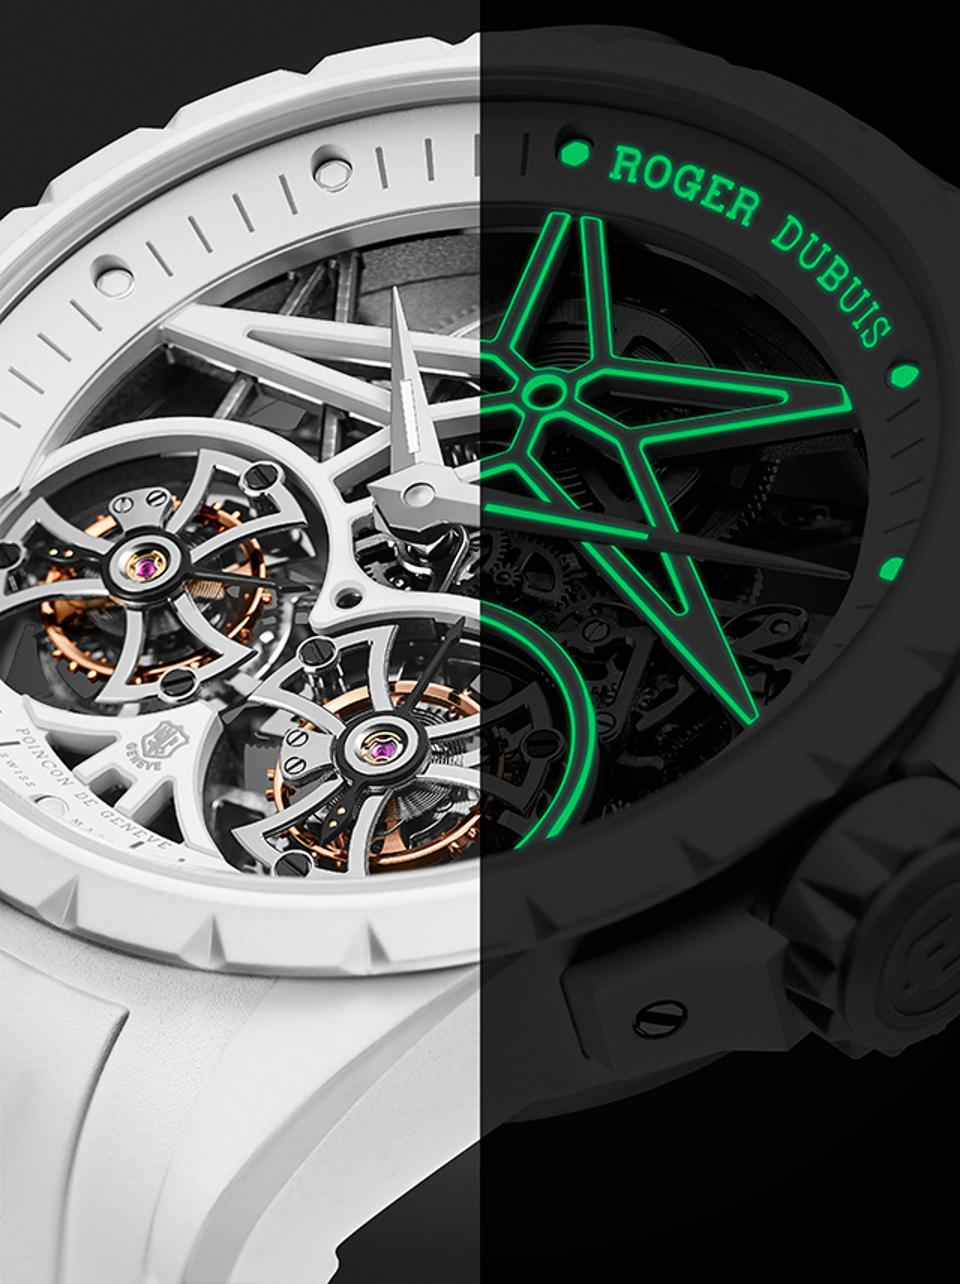 The Roger Dubuis Excalibur Twofold glows spectacularly in the dark and stays super white in the daytime.